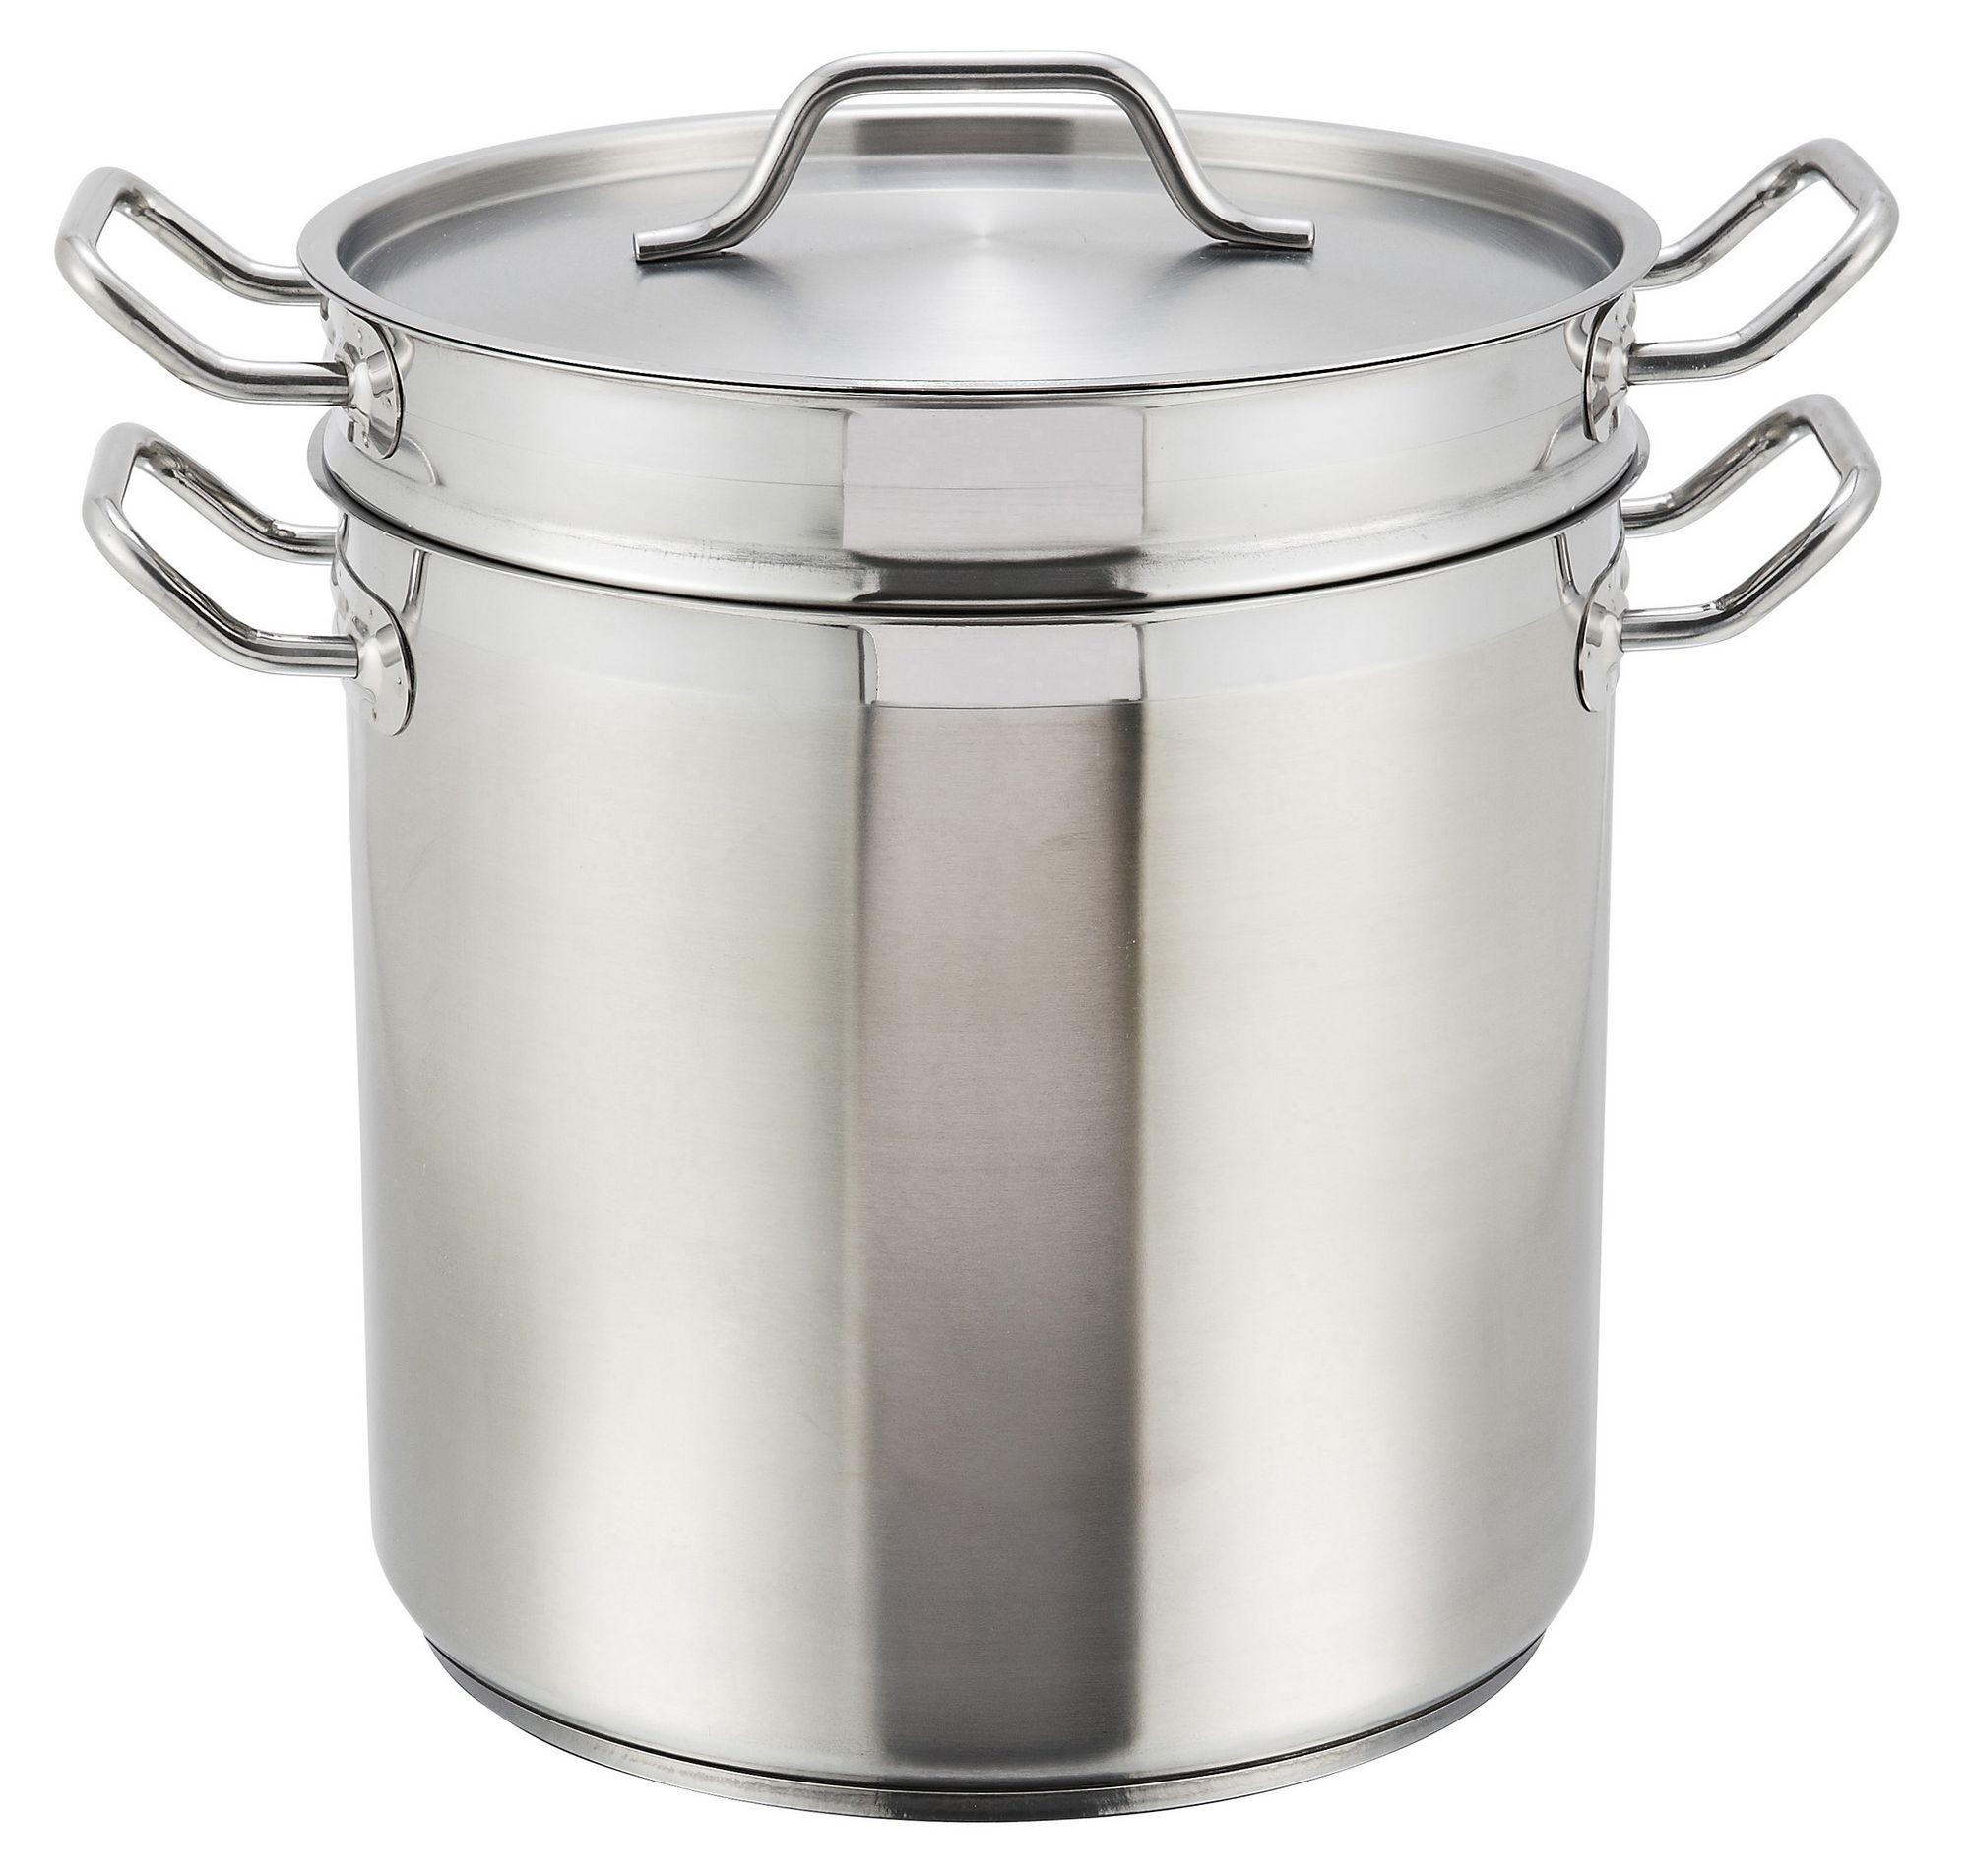 Winco ssdb-20s Stainless Steel 20 Qt. Steamer/Pasta Cooker with Cover